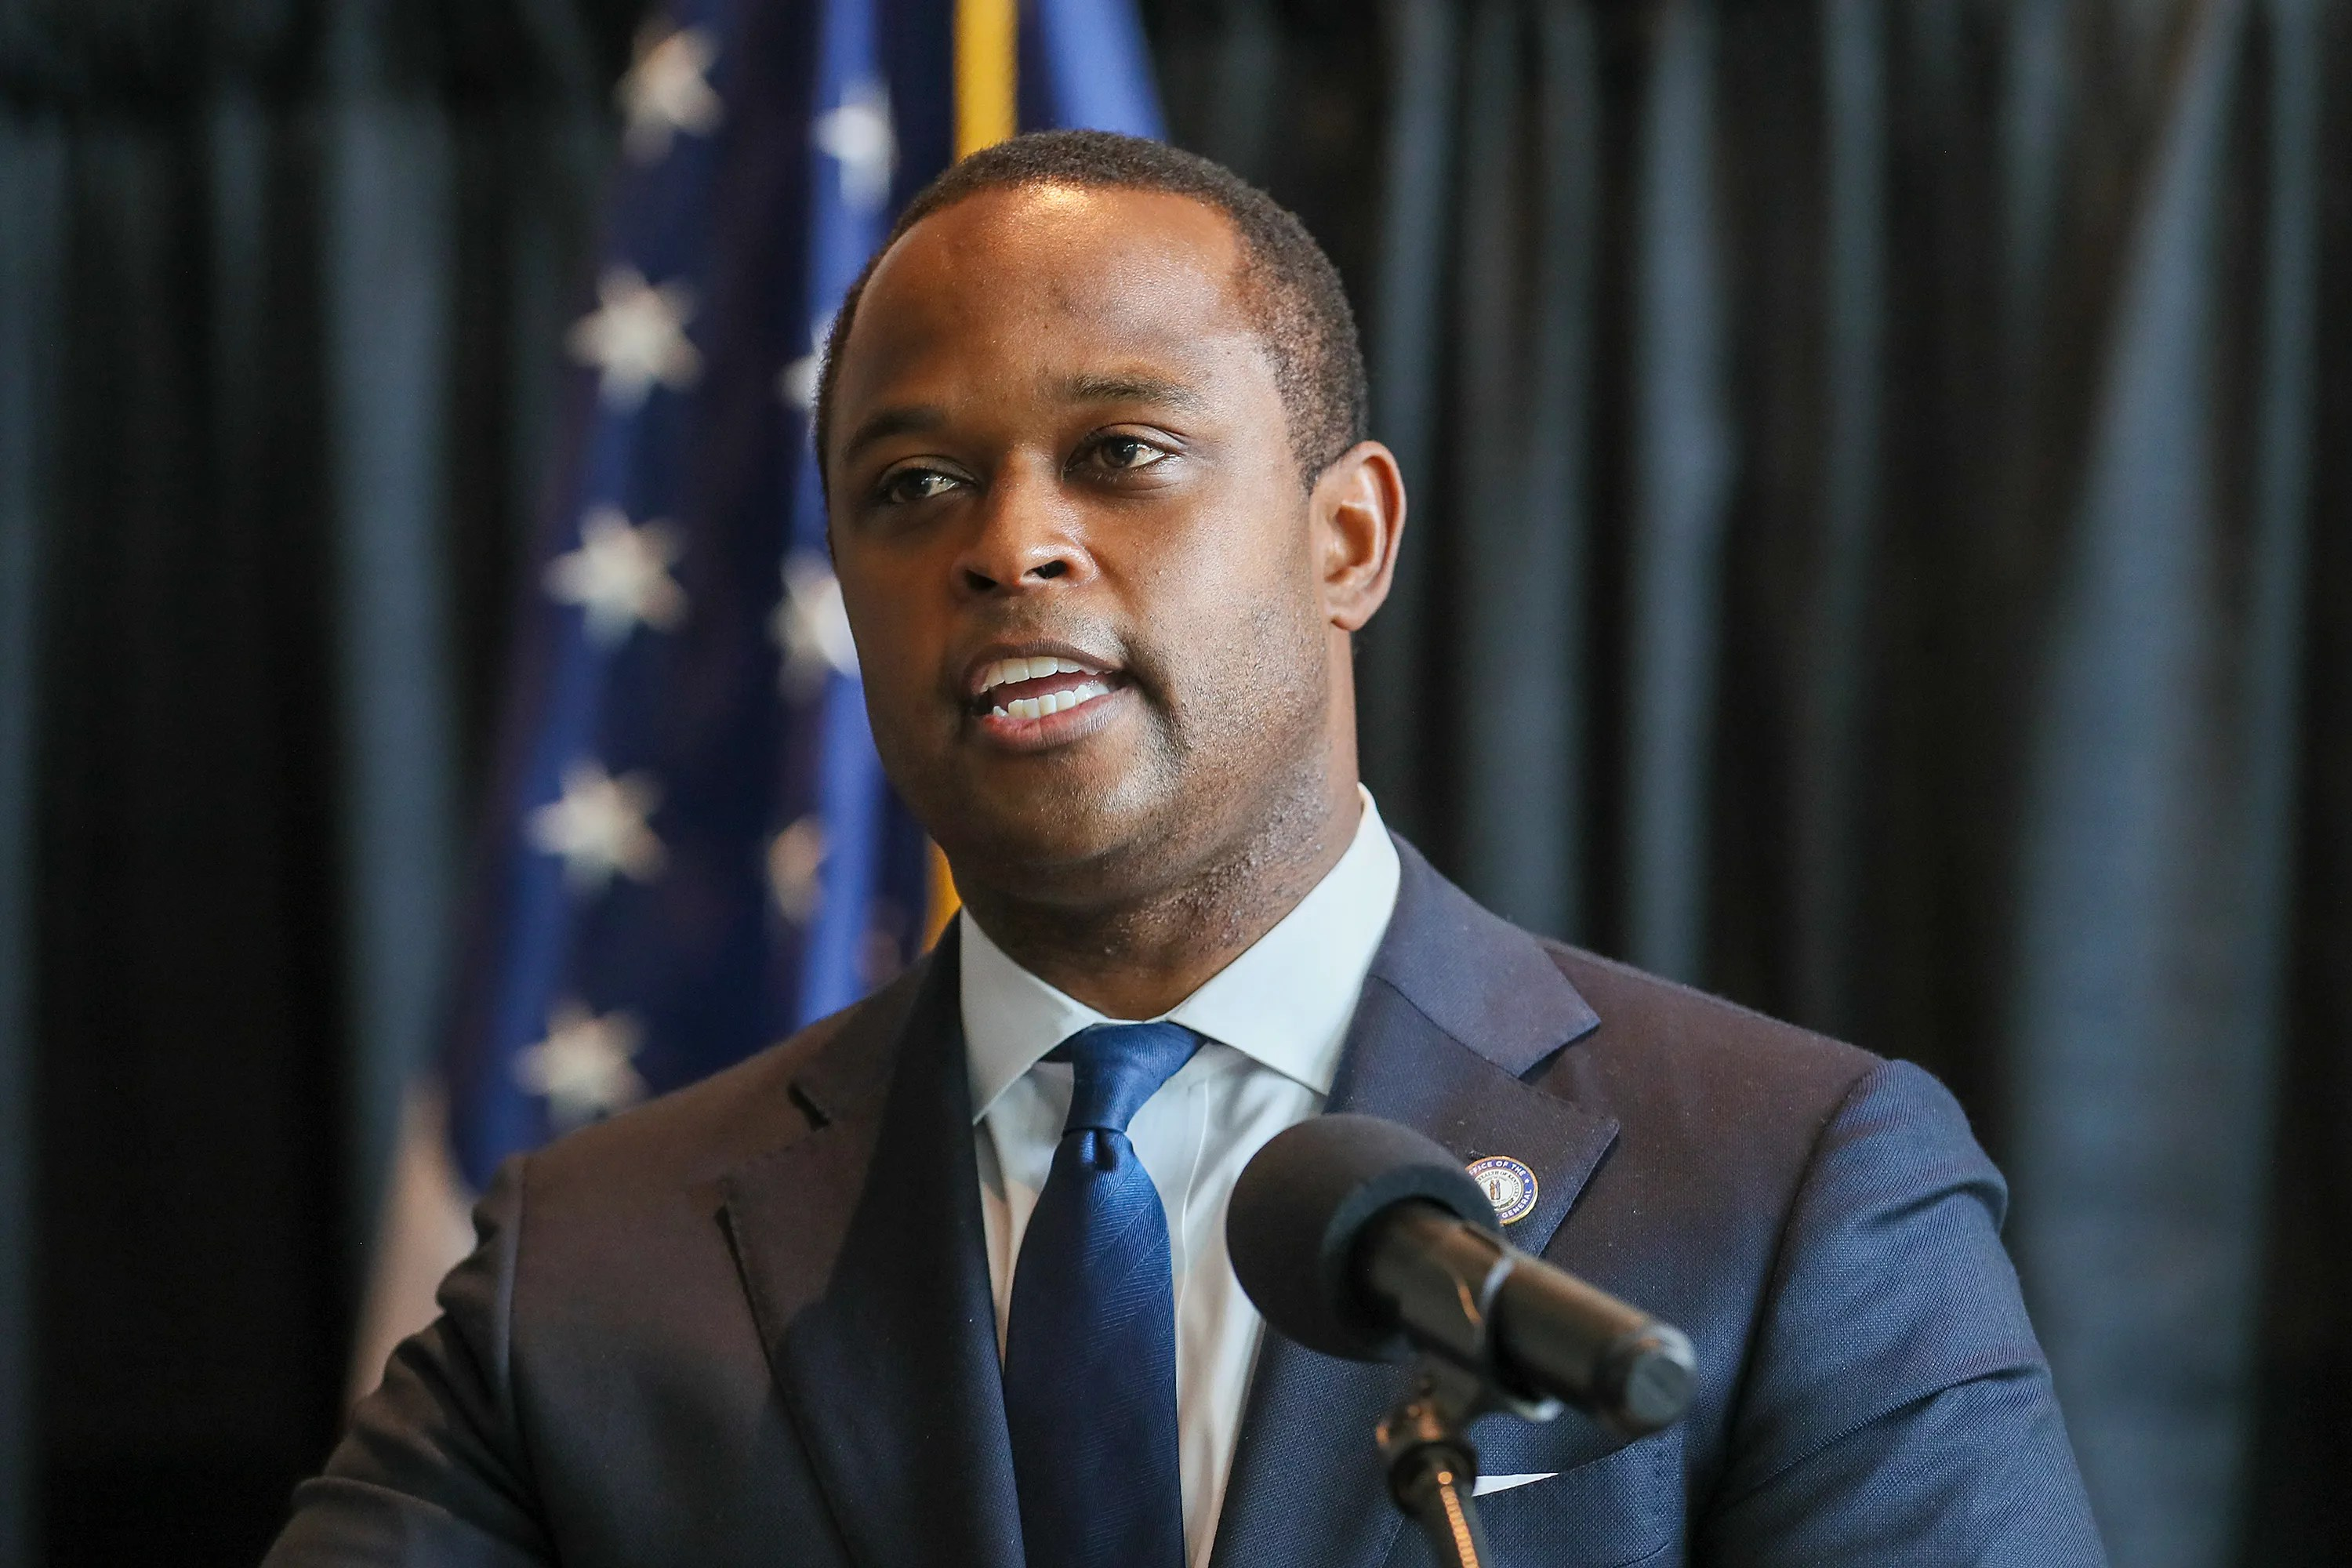 Kentucky Attorney General Daniel Cameron speaks at a press conference in Frankfurt on Wednesday, September 13, 2020, on the results of his office's review of the Breonna Taylor shooting case.